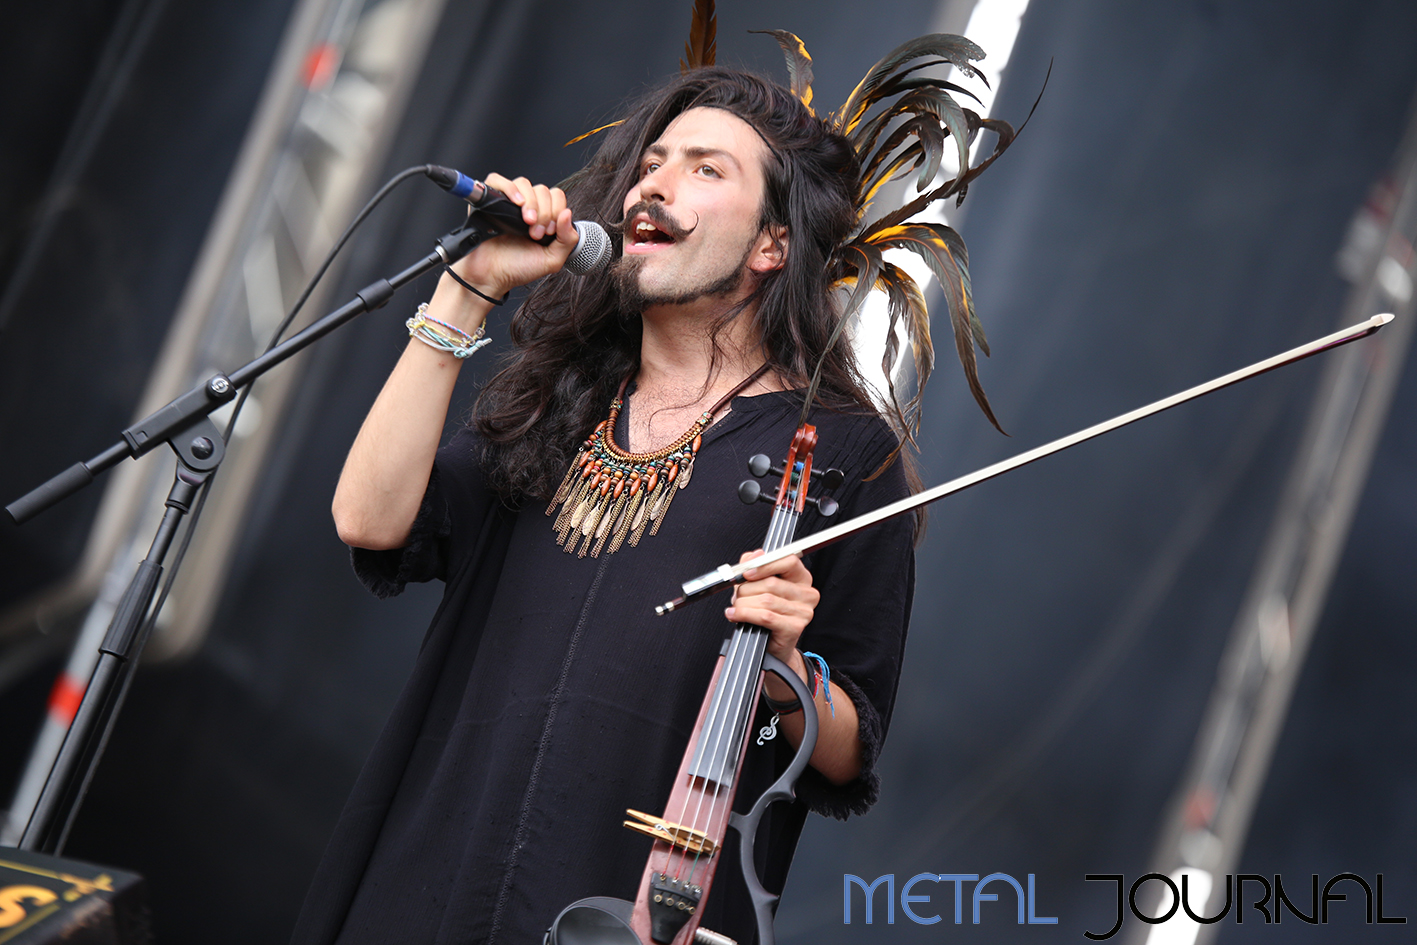 jose andrea uroboros - leyendas del rock 2019 metal journal pic 4